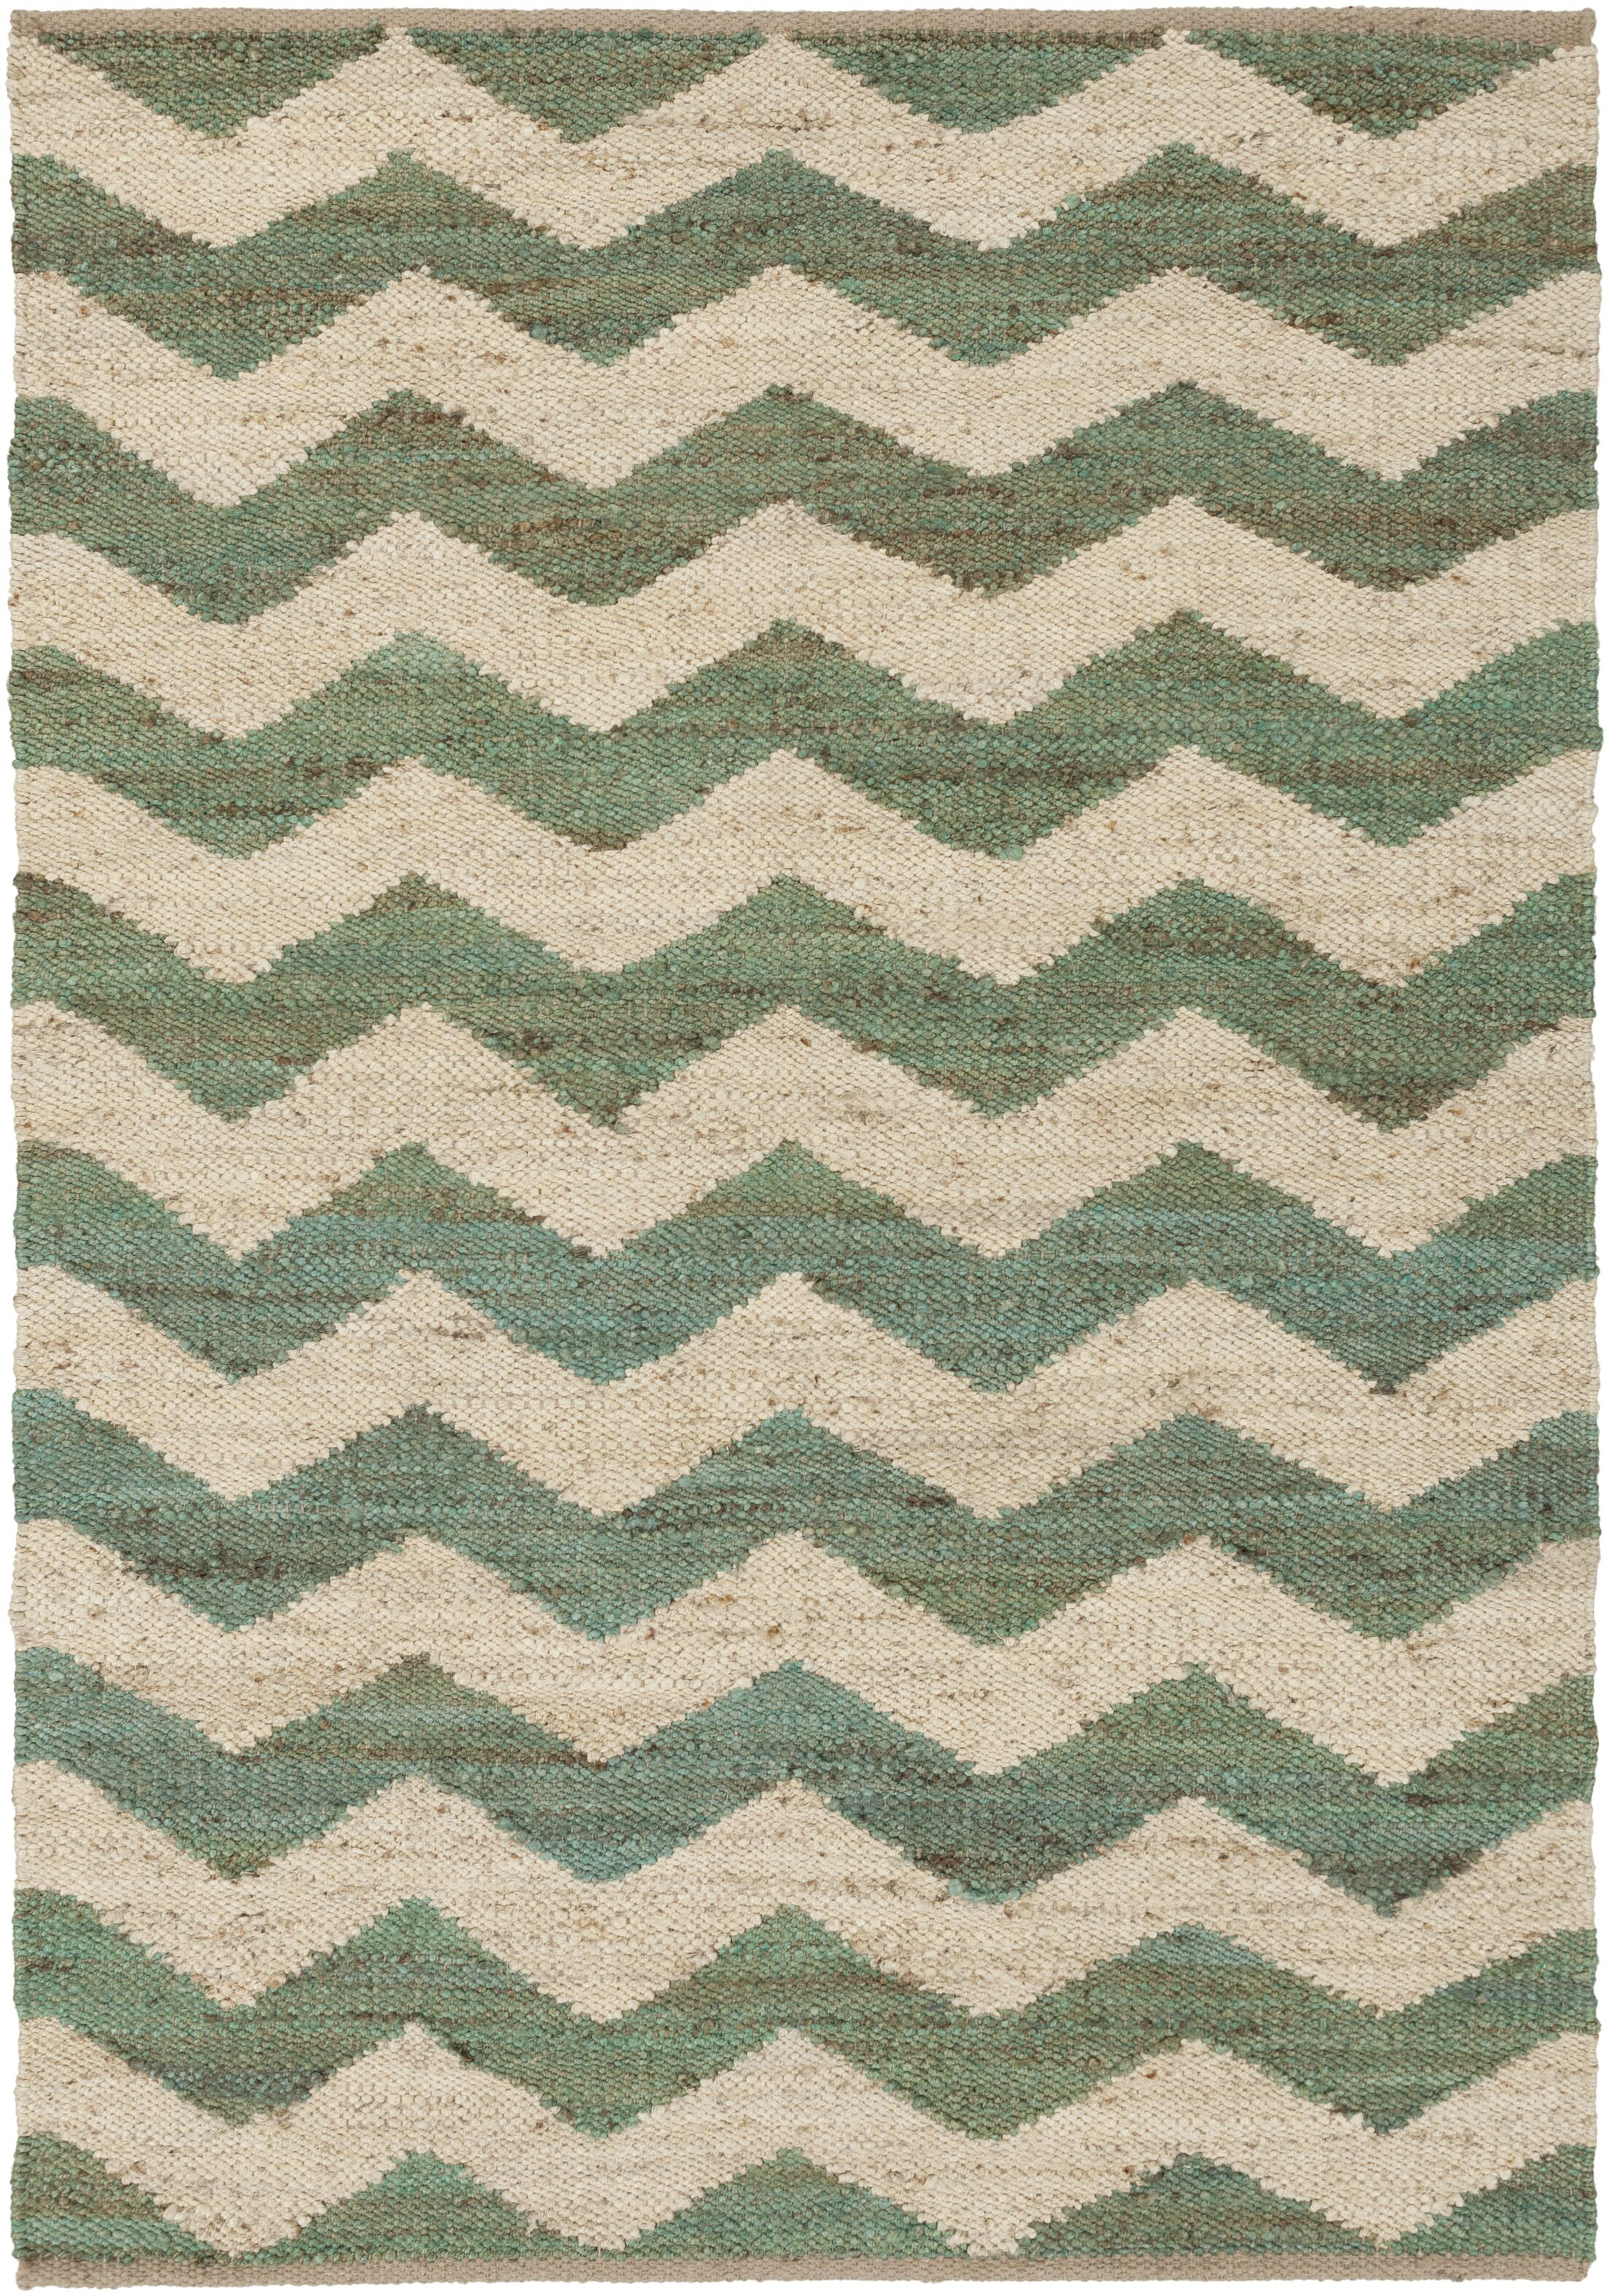 Ayers Teal/Ivory Area Rug Rug Size: Rectangle 4' x 6'